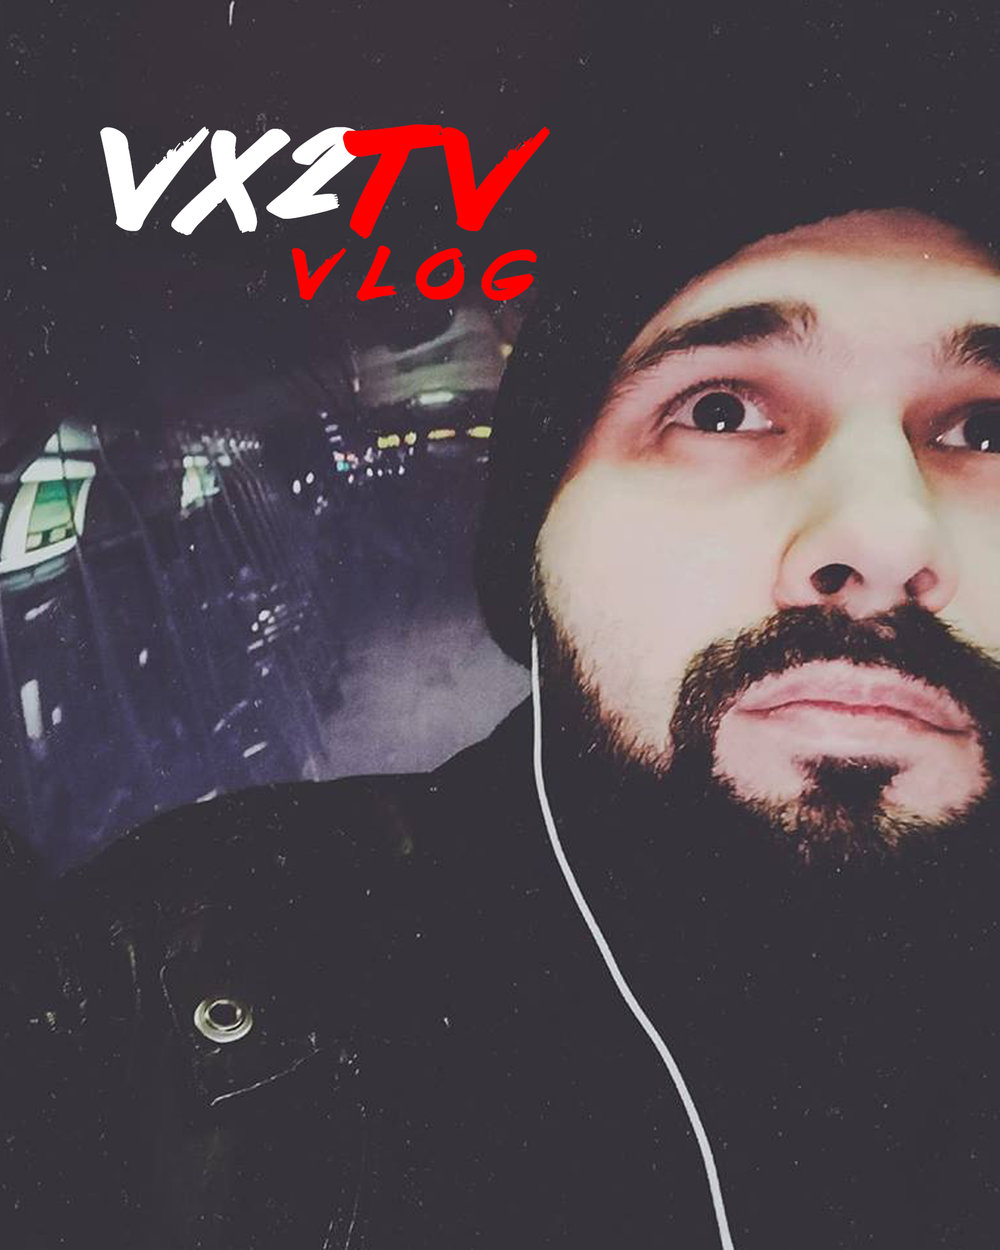 VX2TV VLOG   Follow Vasko Obscura as he takes you behind the scenes to meet the models and keeps you up to date with what's happening at VX2TV   Go To Show